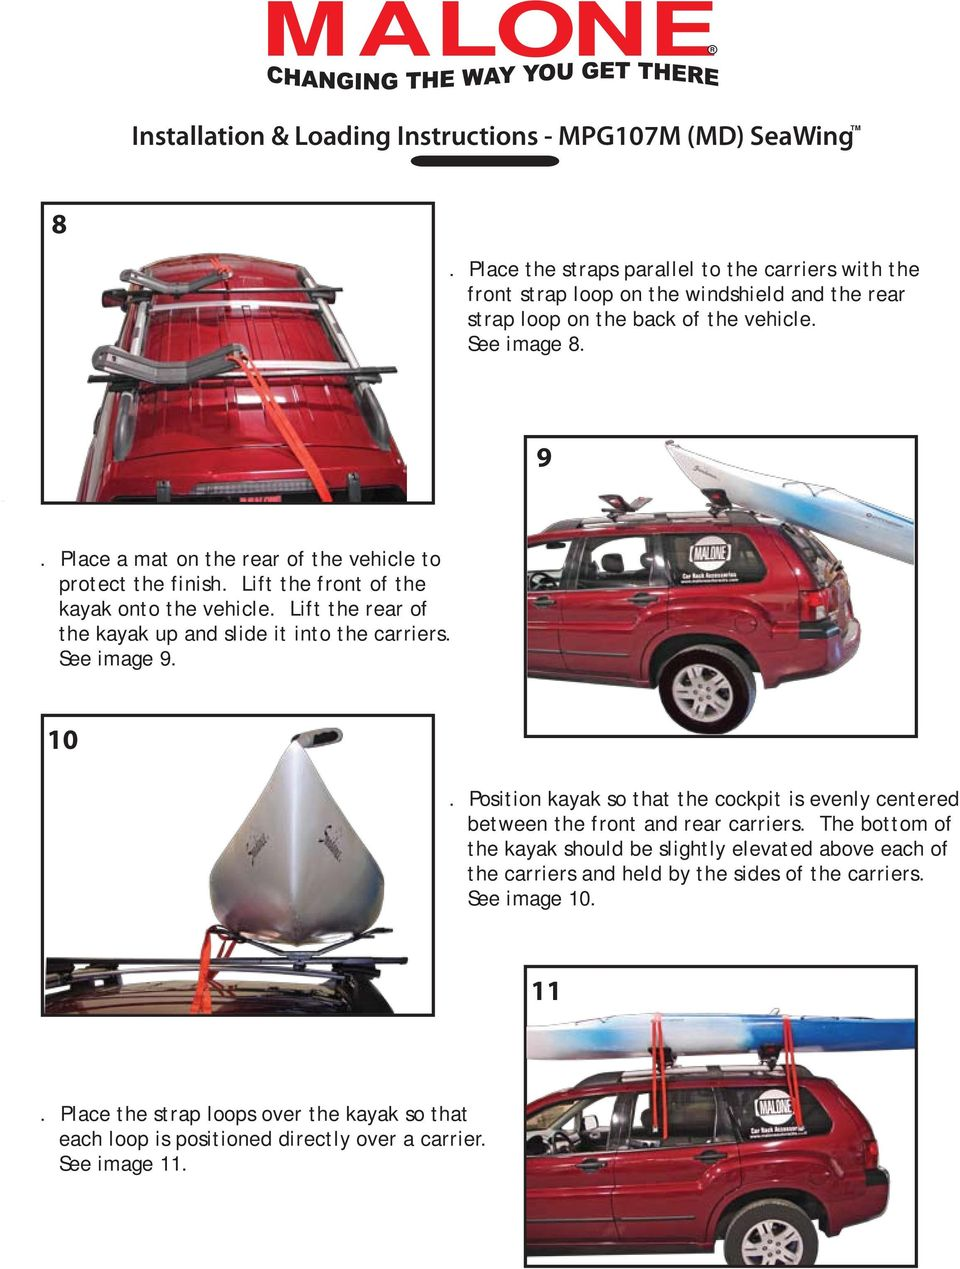 Place a mat on the rear of the vehicle to protect the finish. Lift the front of the kayak onto the vehicle. Lift the rear of the kayak up and slide it into the carriers. See image 9.